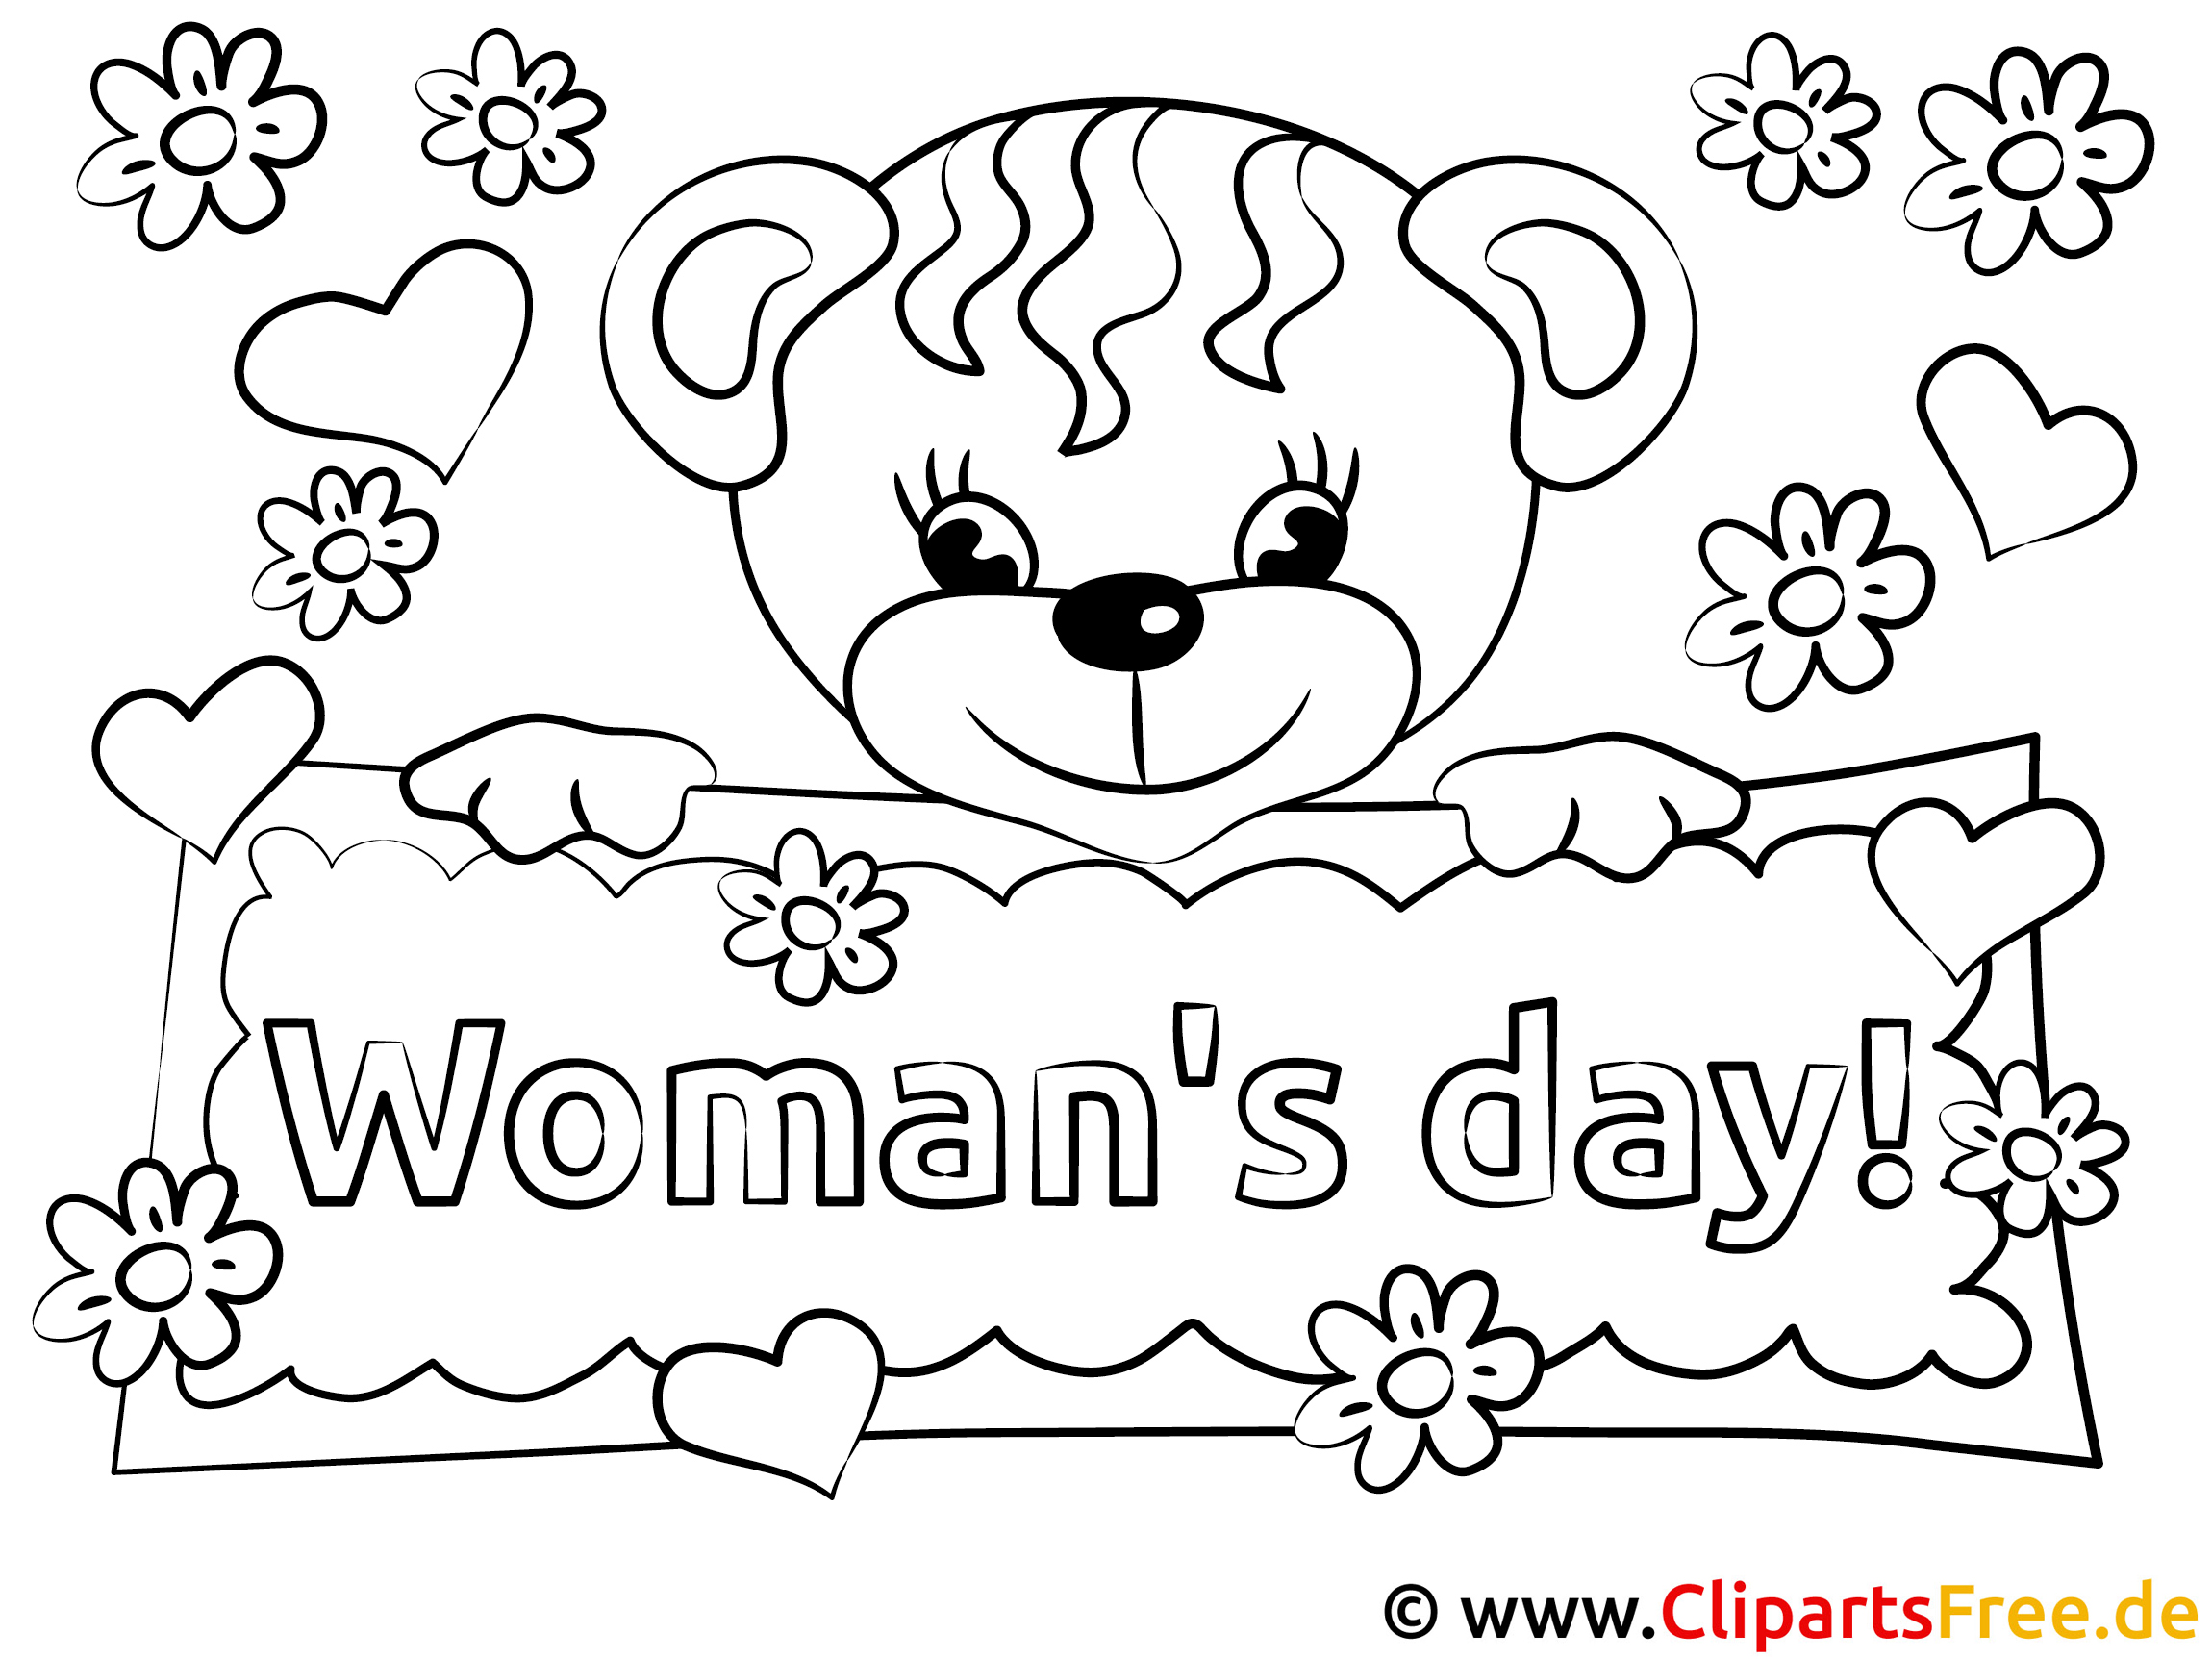 Womans Day Coloring Sheet free